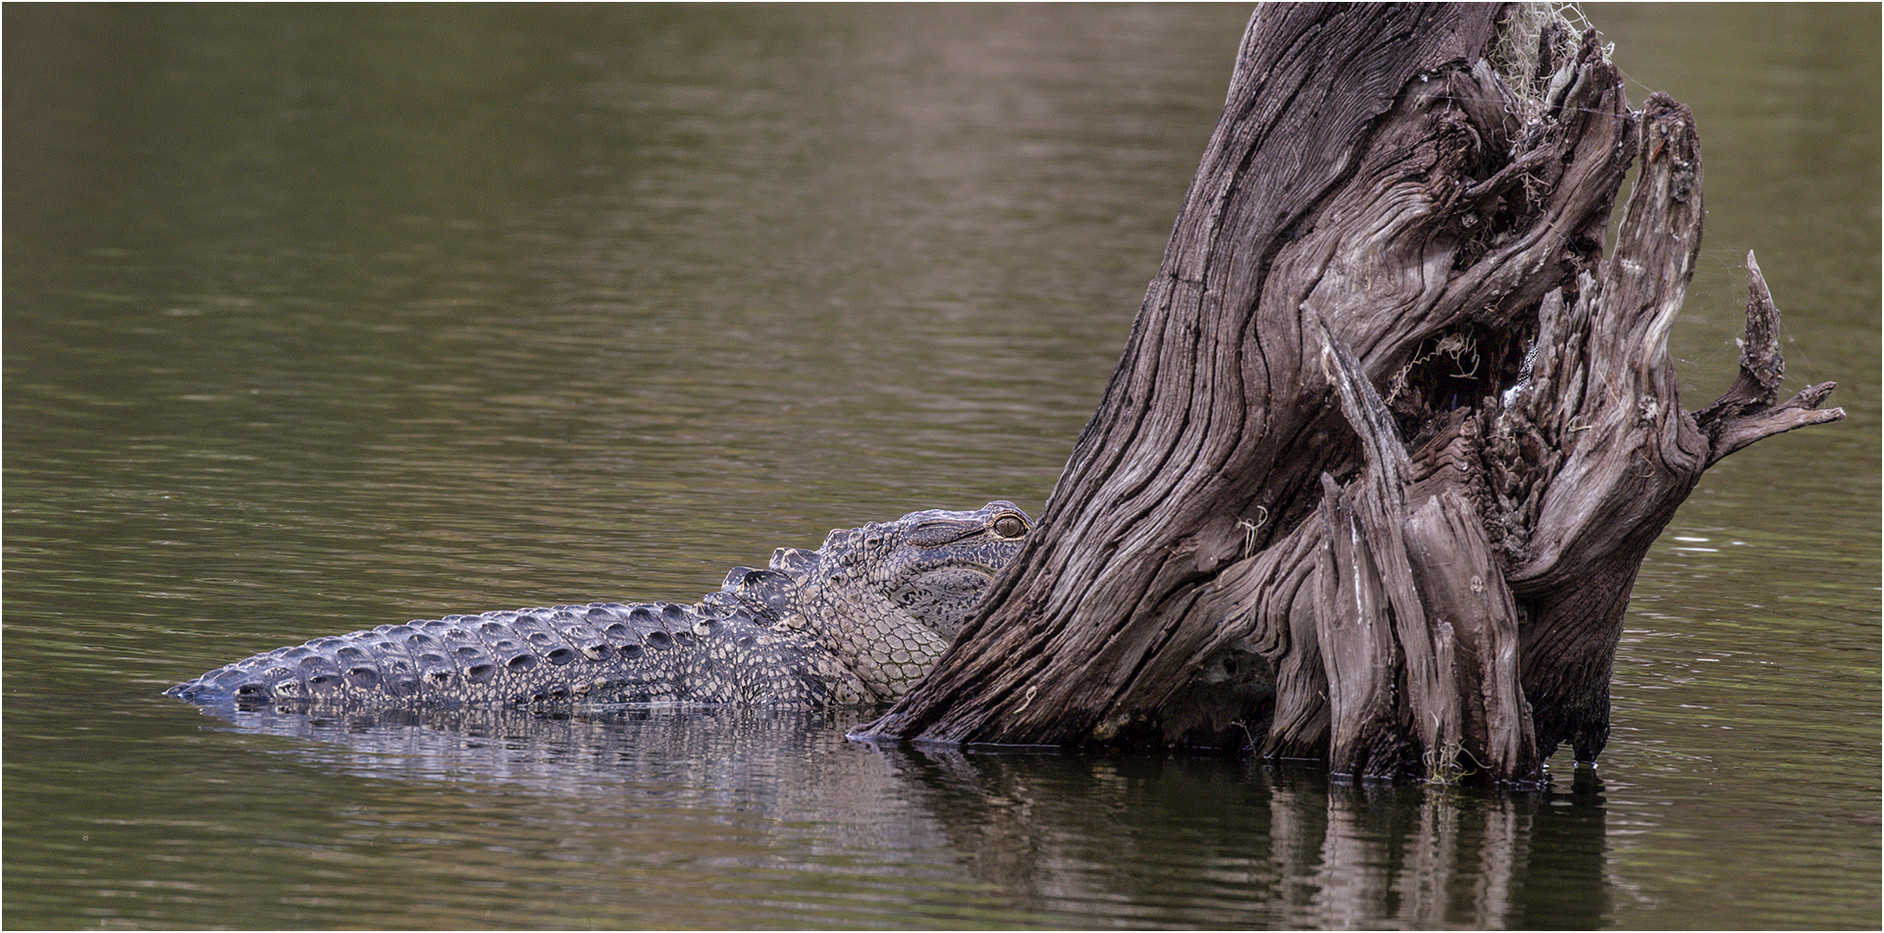 15 FLORIDIAN ALLIGATOR (WILD) by Colin Burgess